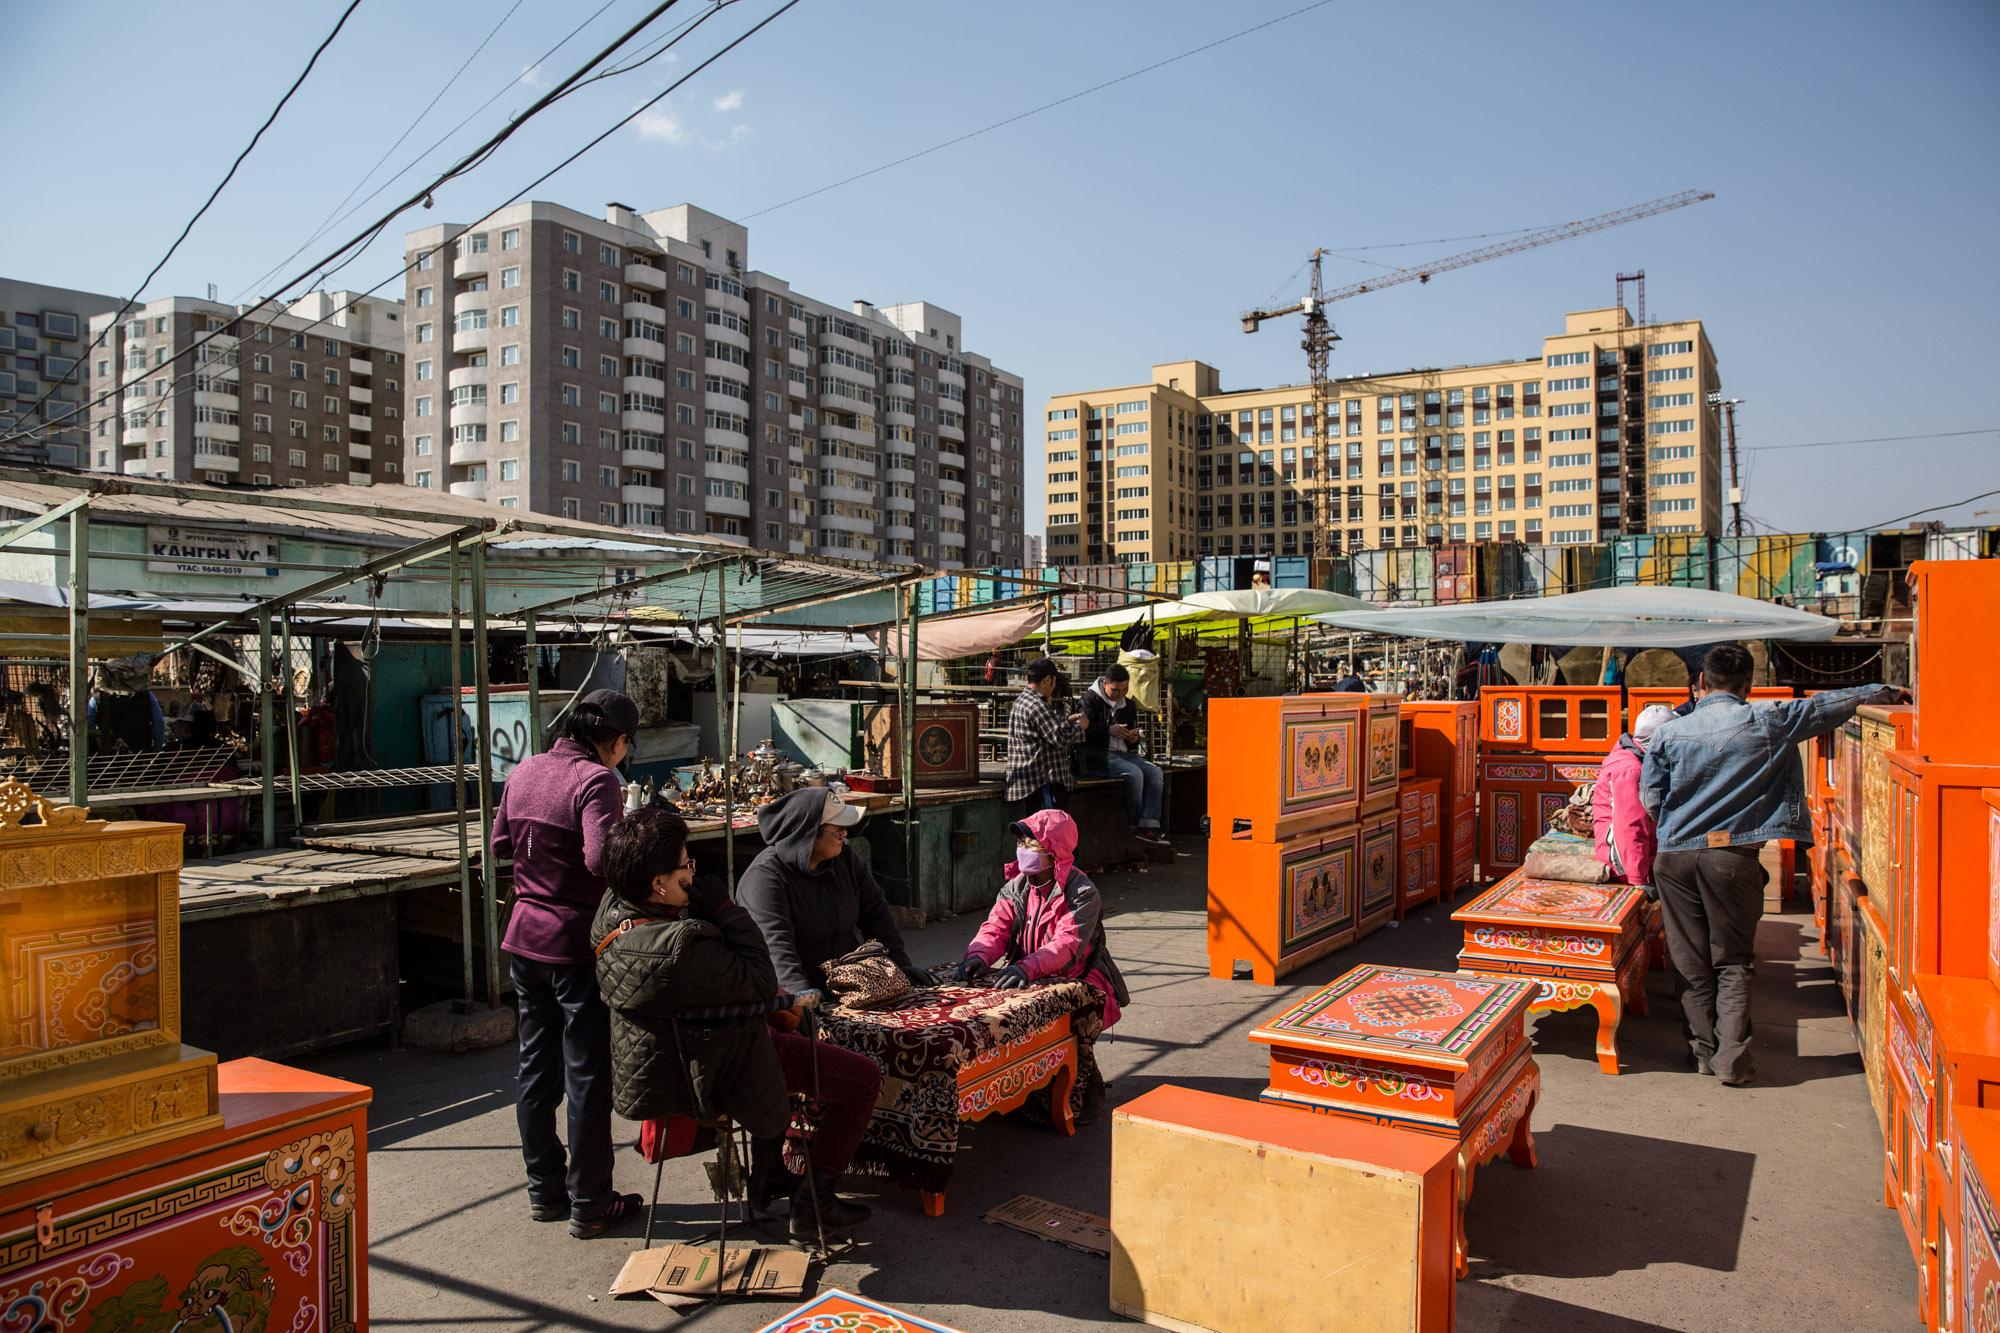 Vendors sit in a market in Ulaanbataar, Mongolia. Behind them, high rise apartments dominate the landscape.